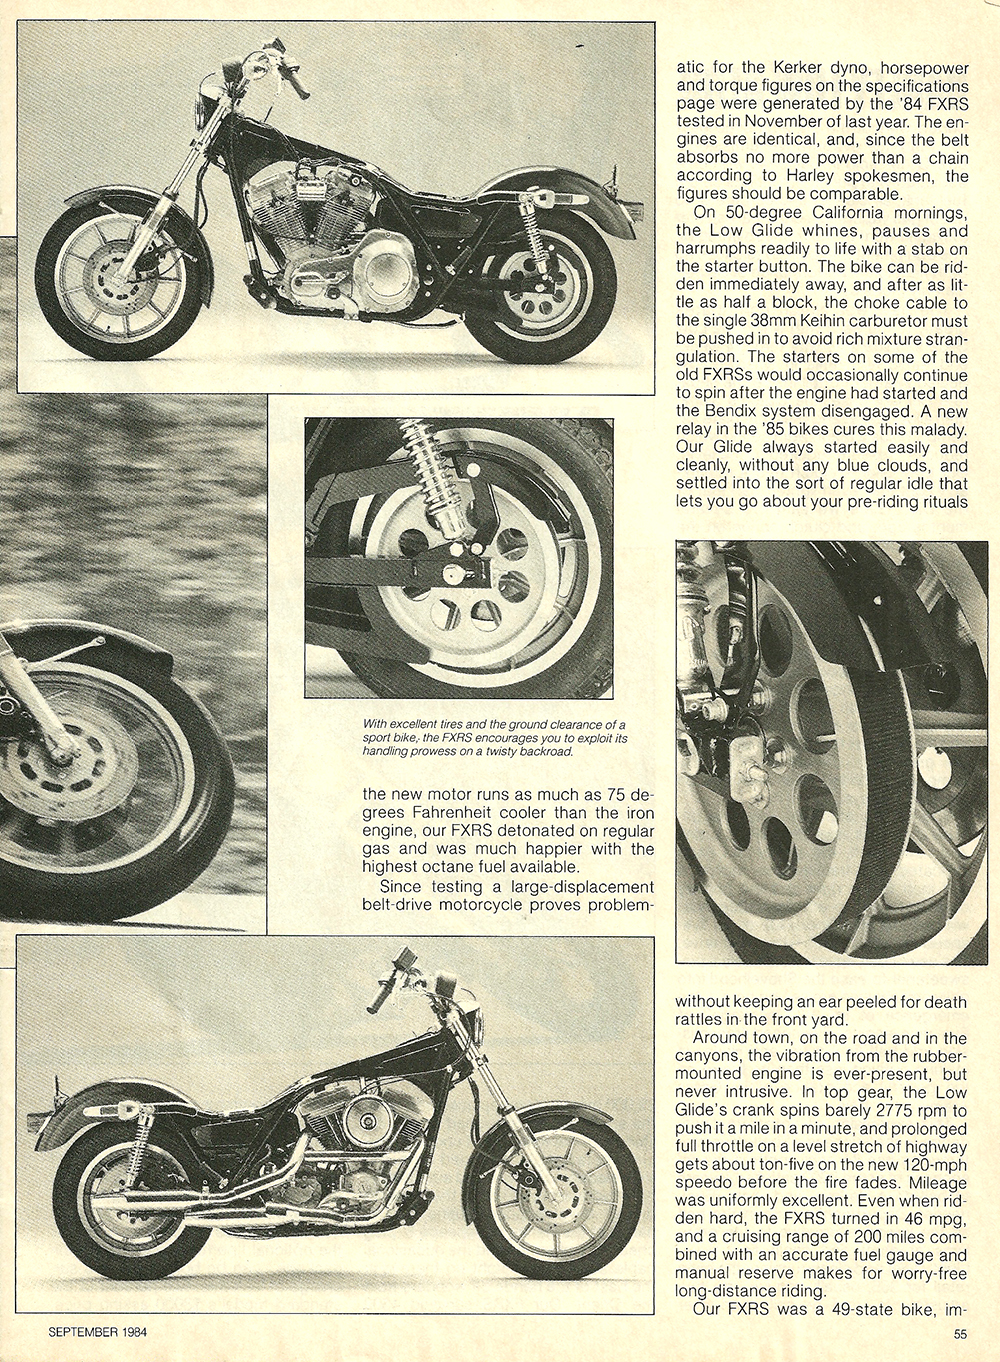 1984 Harley-Davidson Low Glide FXRS road test 6.jpg